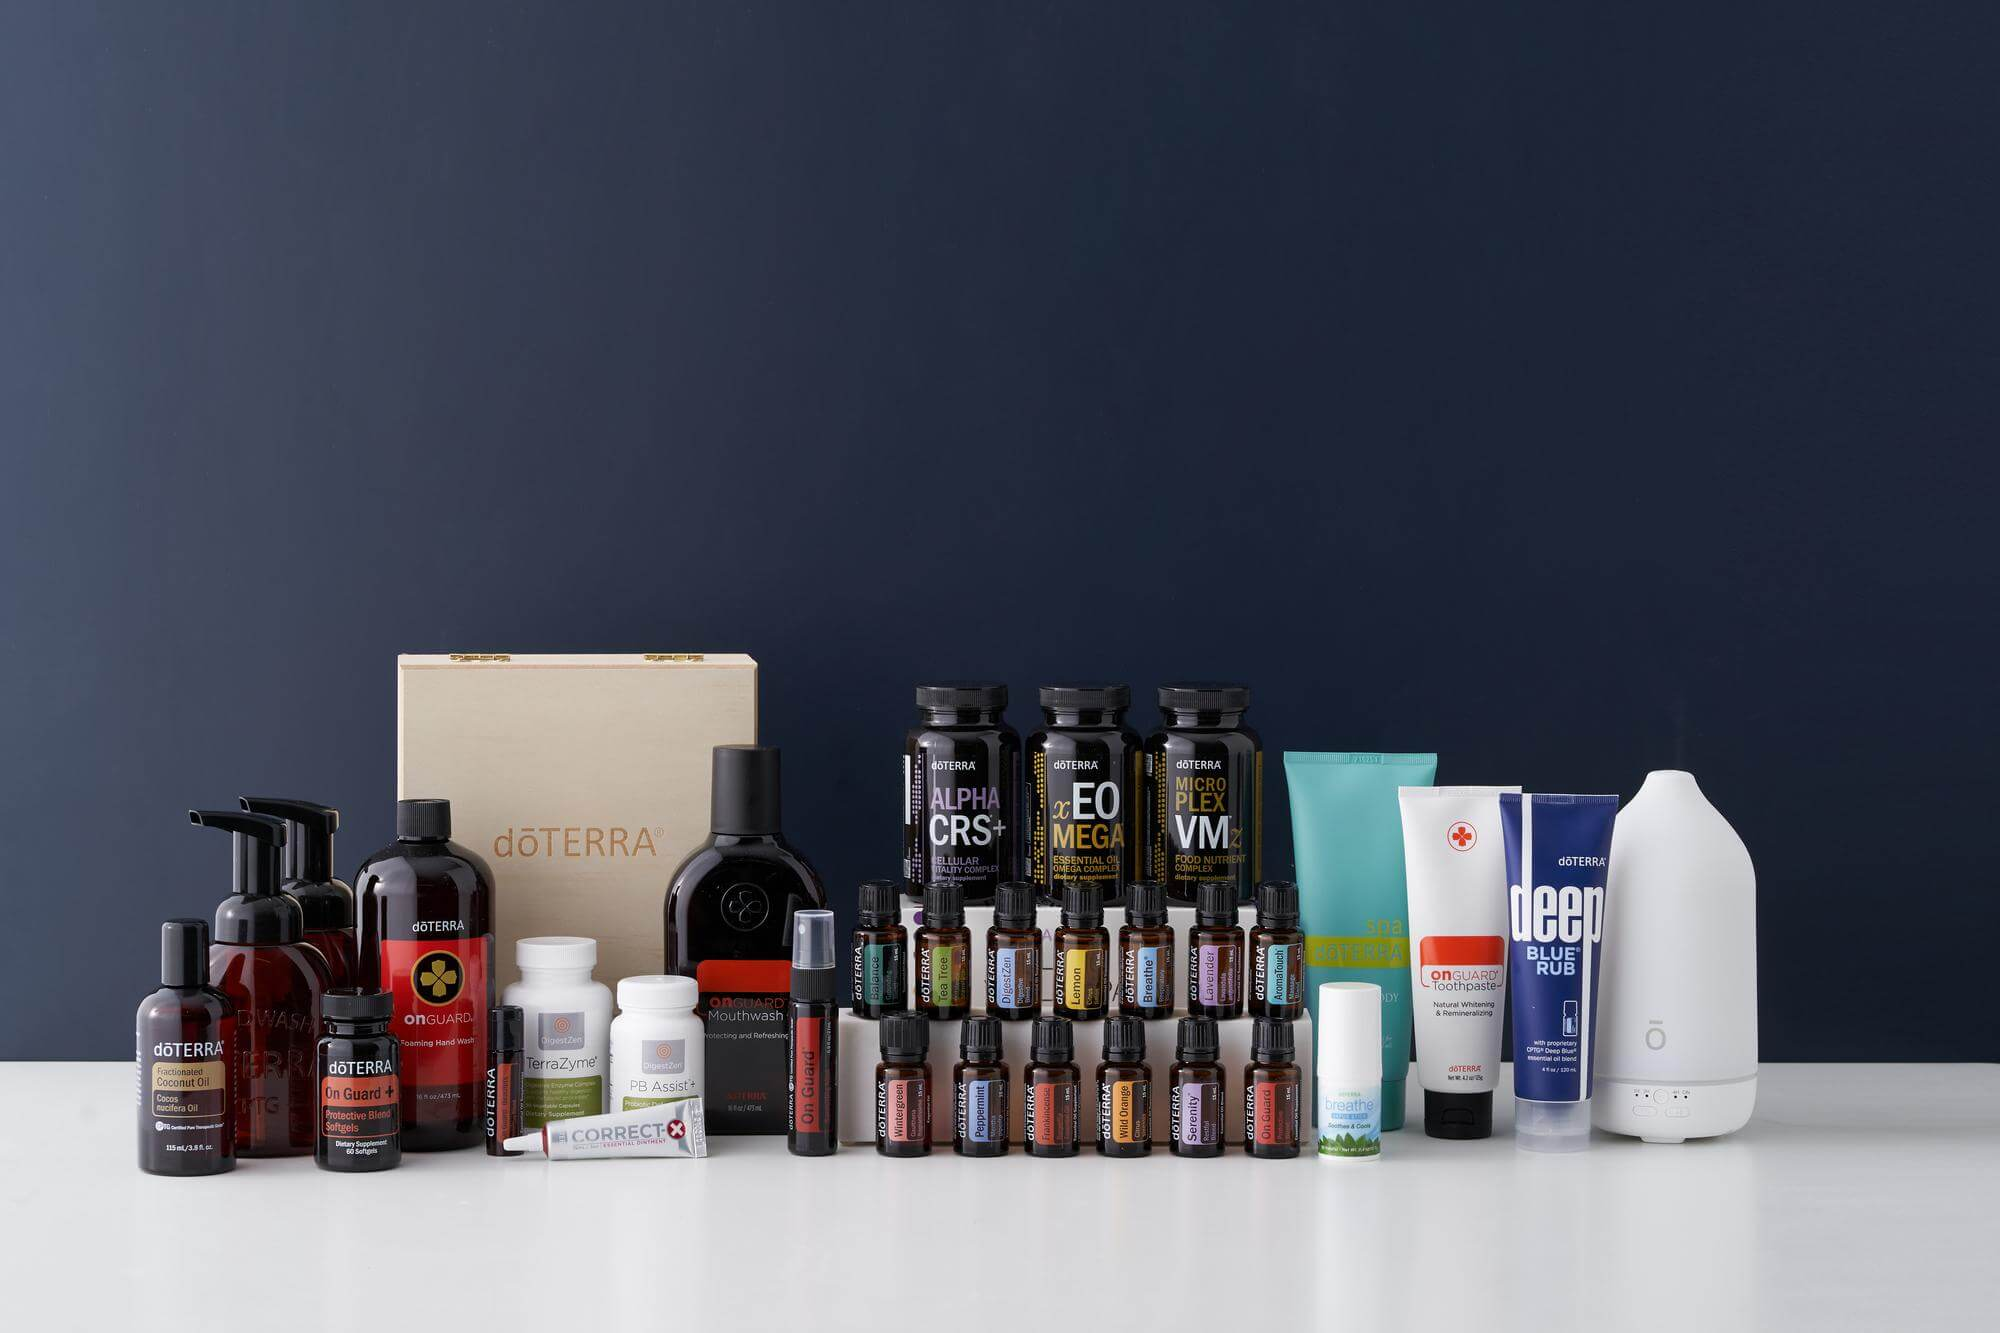 doTERRA Natural Solutions Kit displayed on table